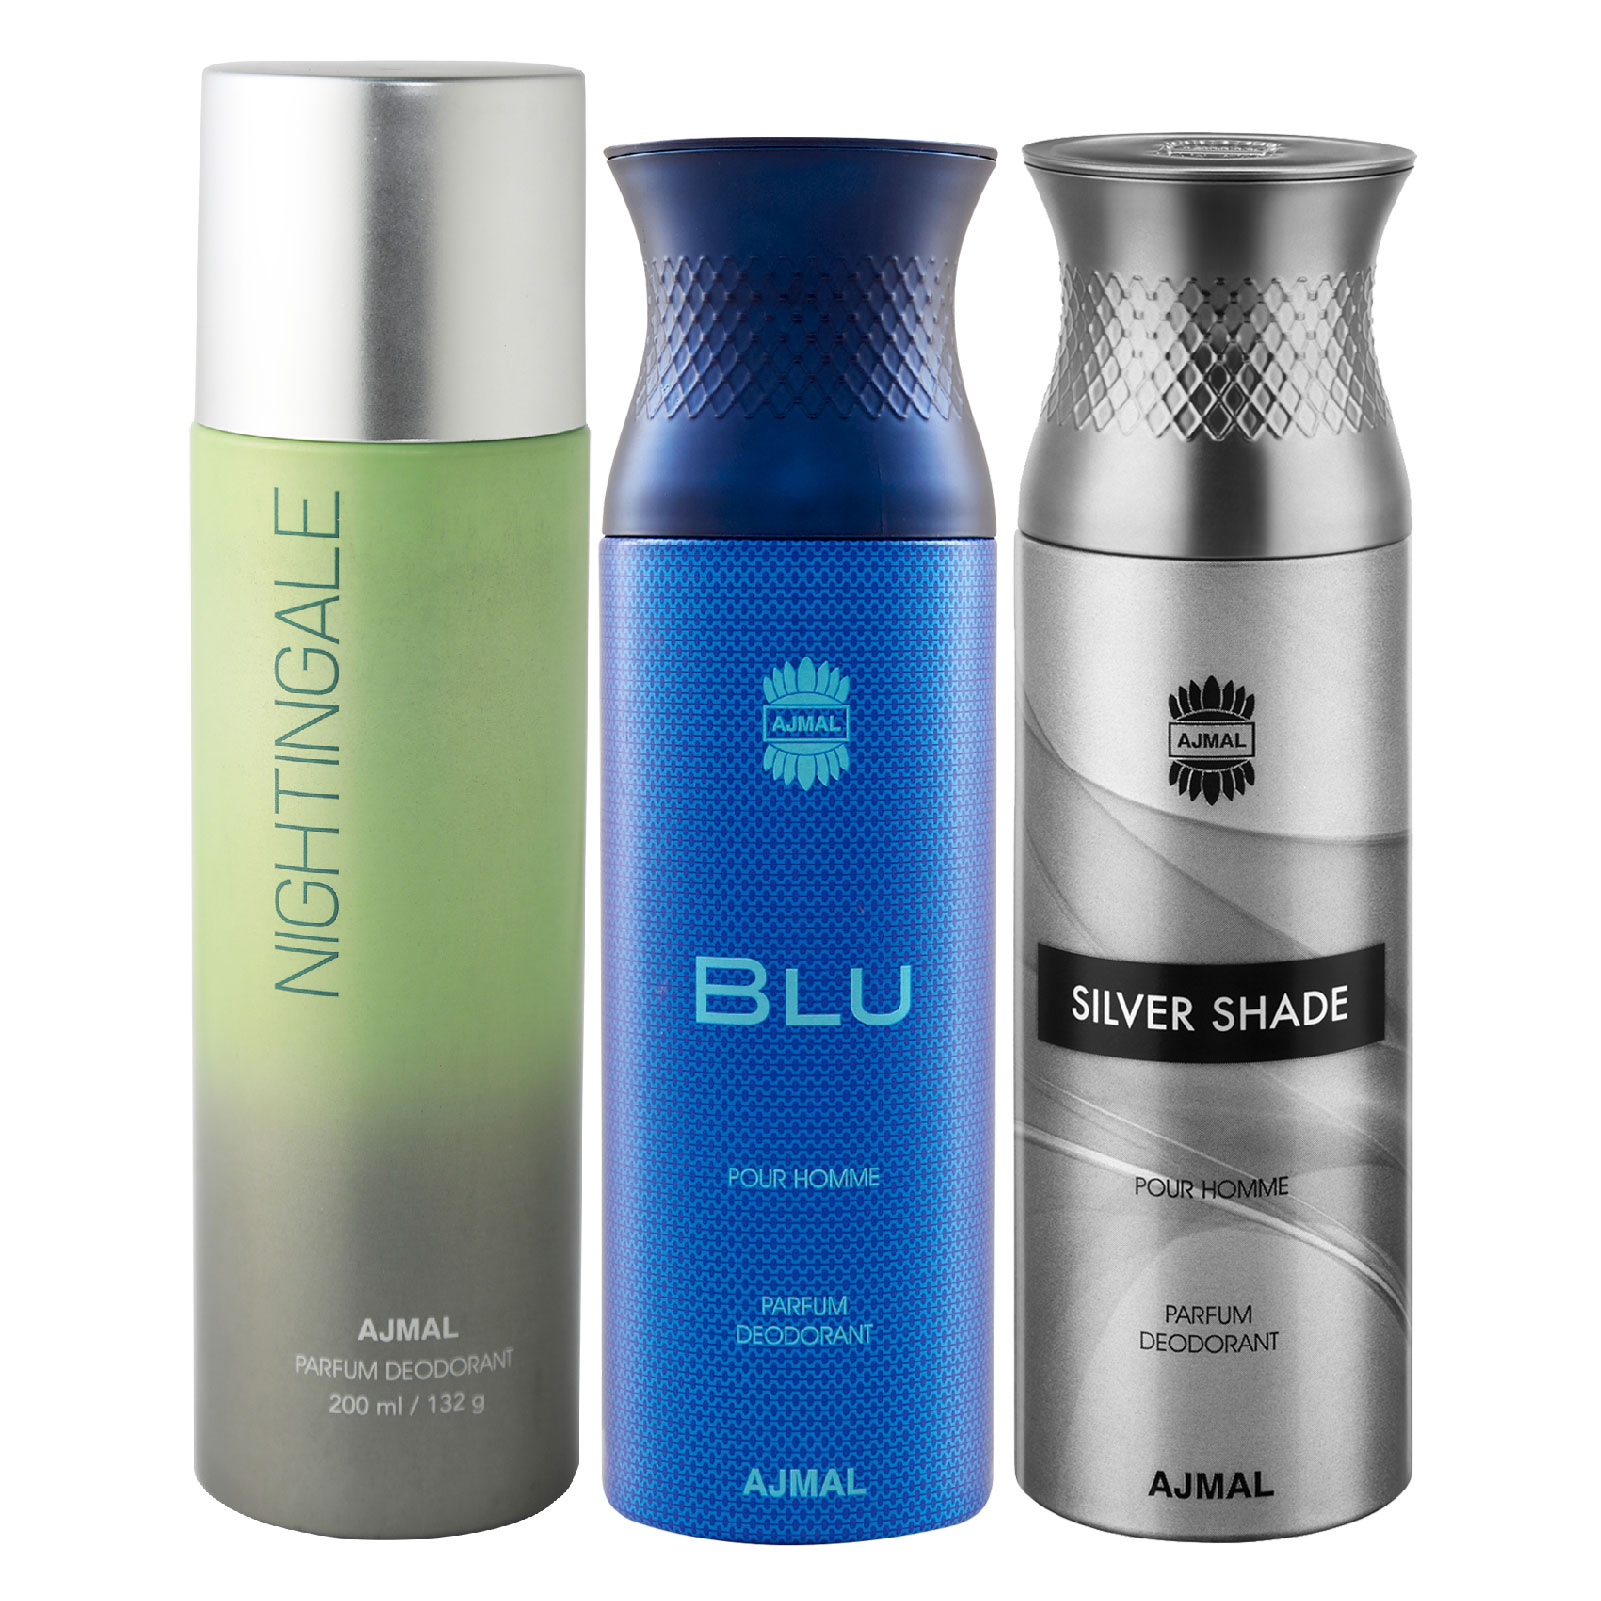 Ajmal | Ajmal 1 Nightingale for Men & Women, 1 Blu Homme for Men and 1 Silver Shade for Men High Quality Deodorants each 200ML Combo pack of 3 (Total 600ML) + 3 Parfum Testers